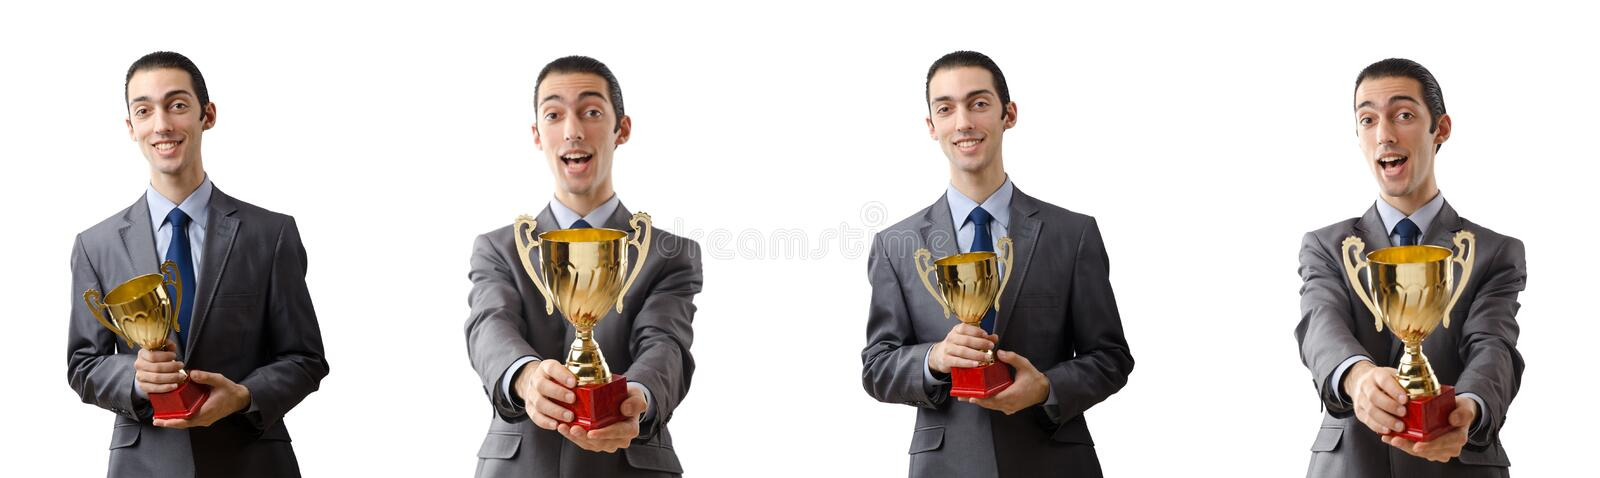 The collage of businessman receiving award. Collage of businessman receiving award royalty free stock image